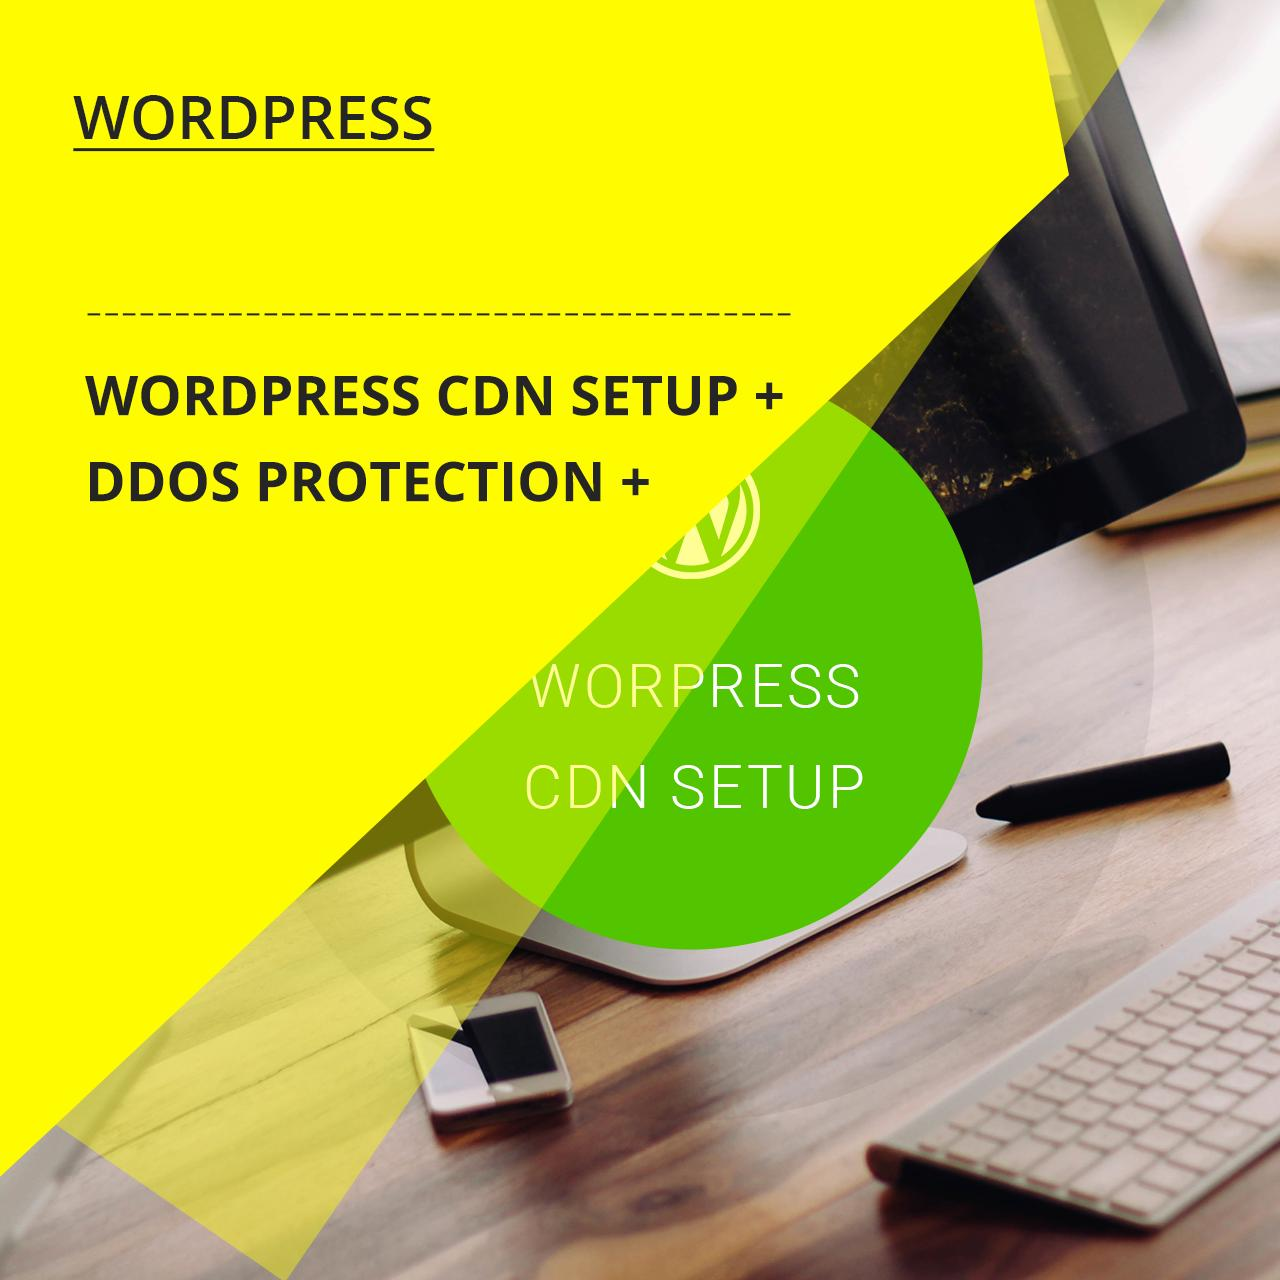 Wordpress CDN Setup + DDoS Protection by zendcrew - 108509